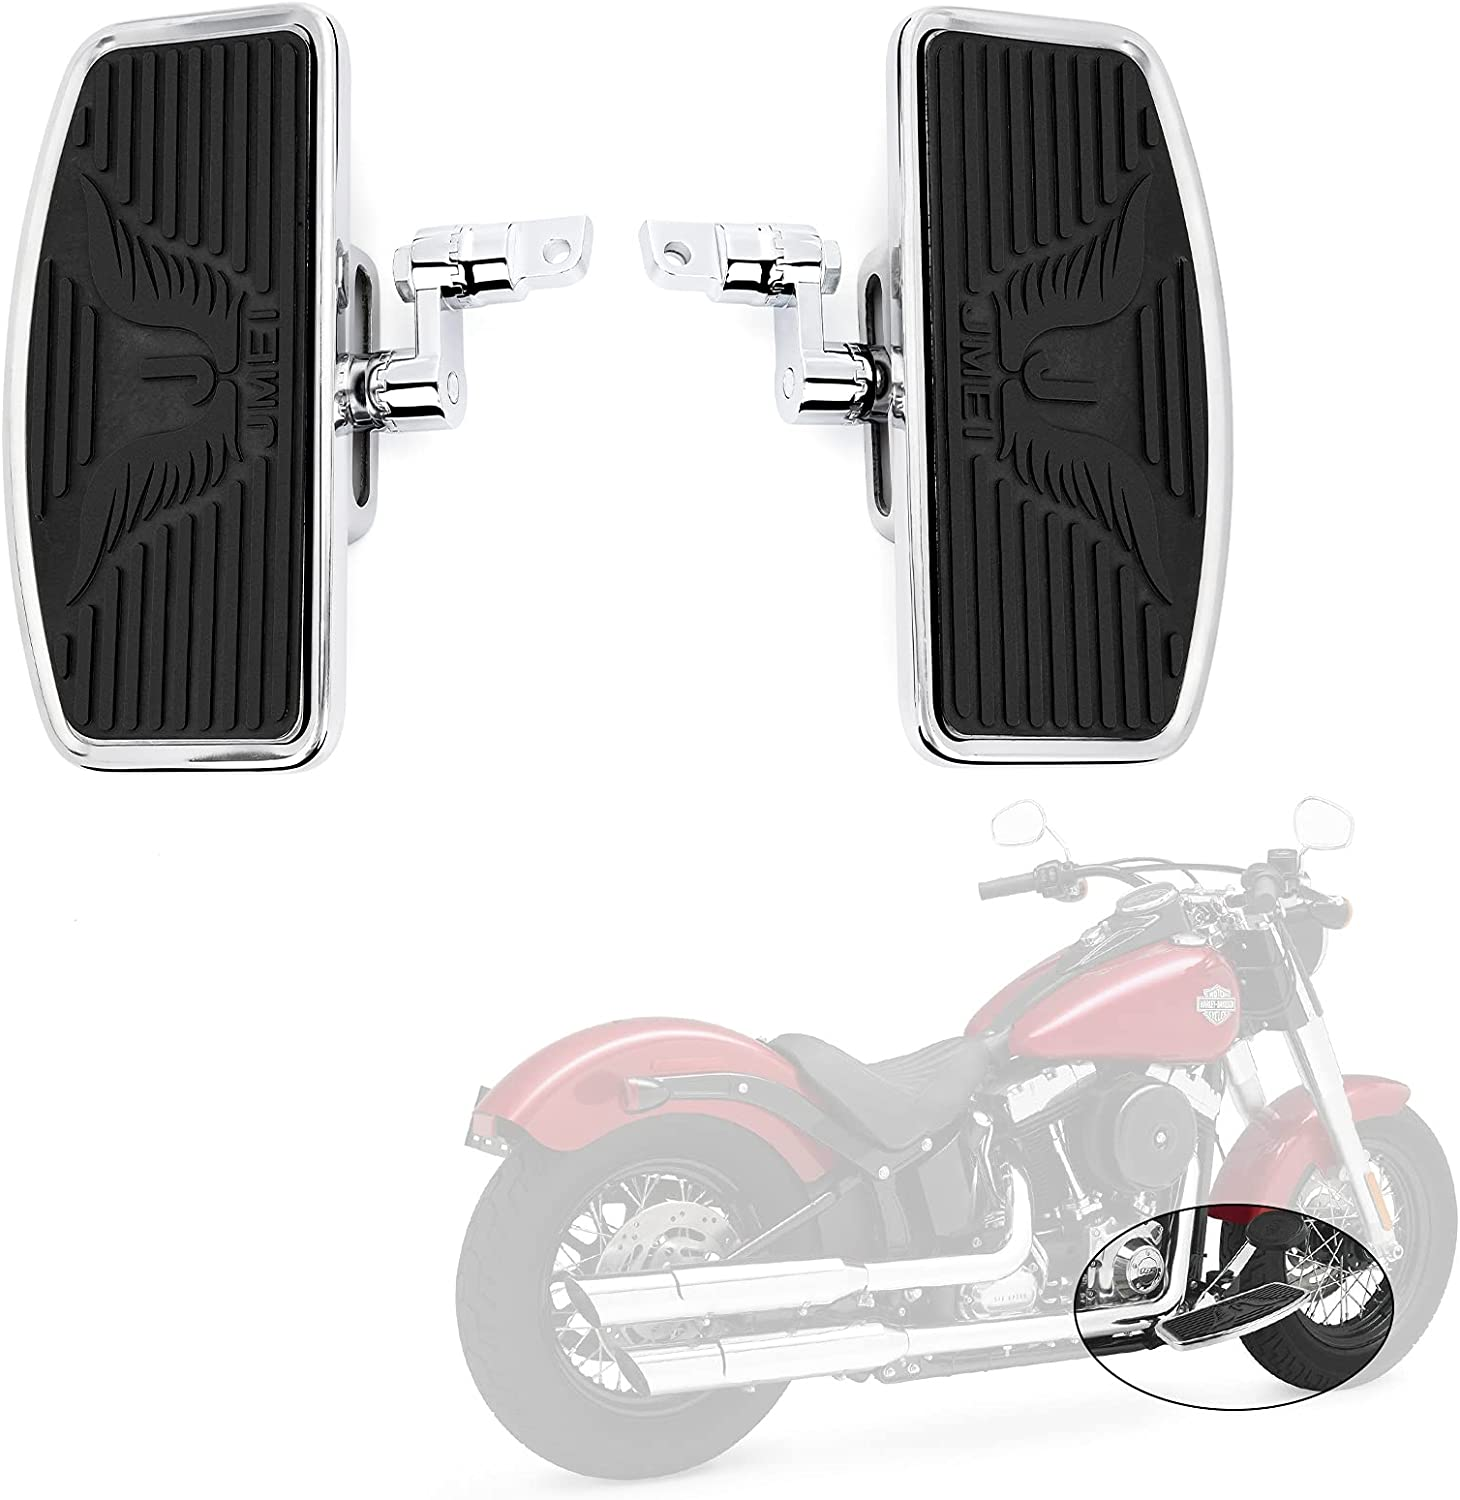 Adjustable New York Manufacturer OFFicial shop Mall Motorcycle Floorboards Front Pegs Foot Passenger